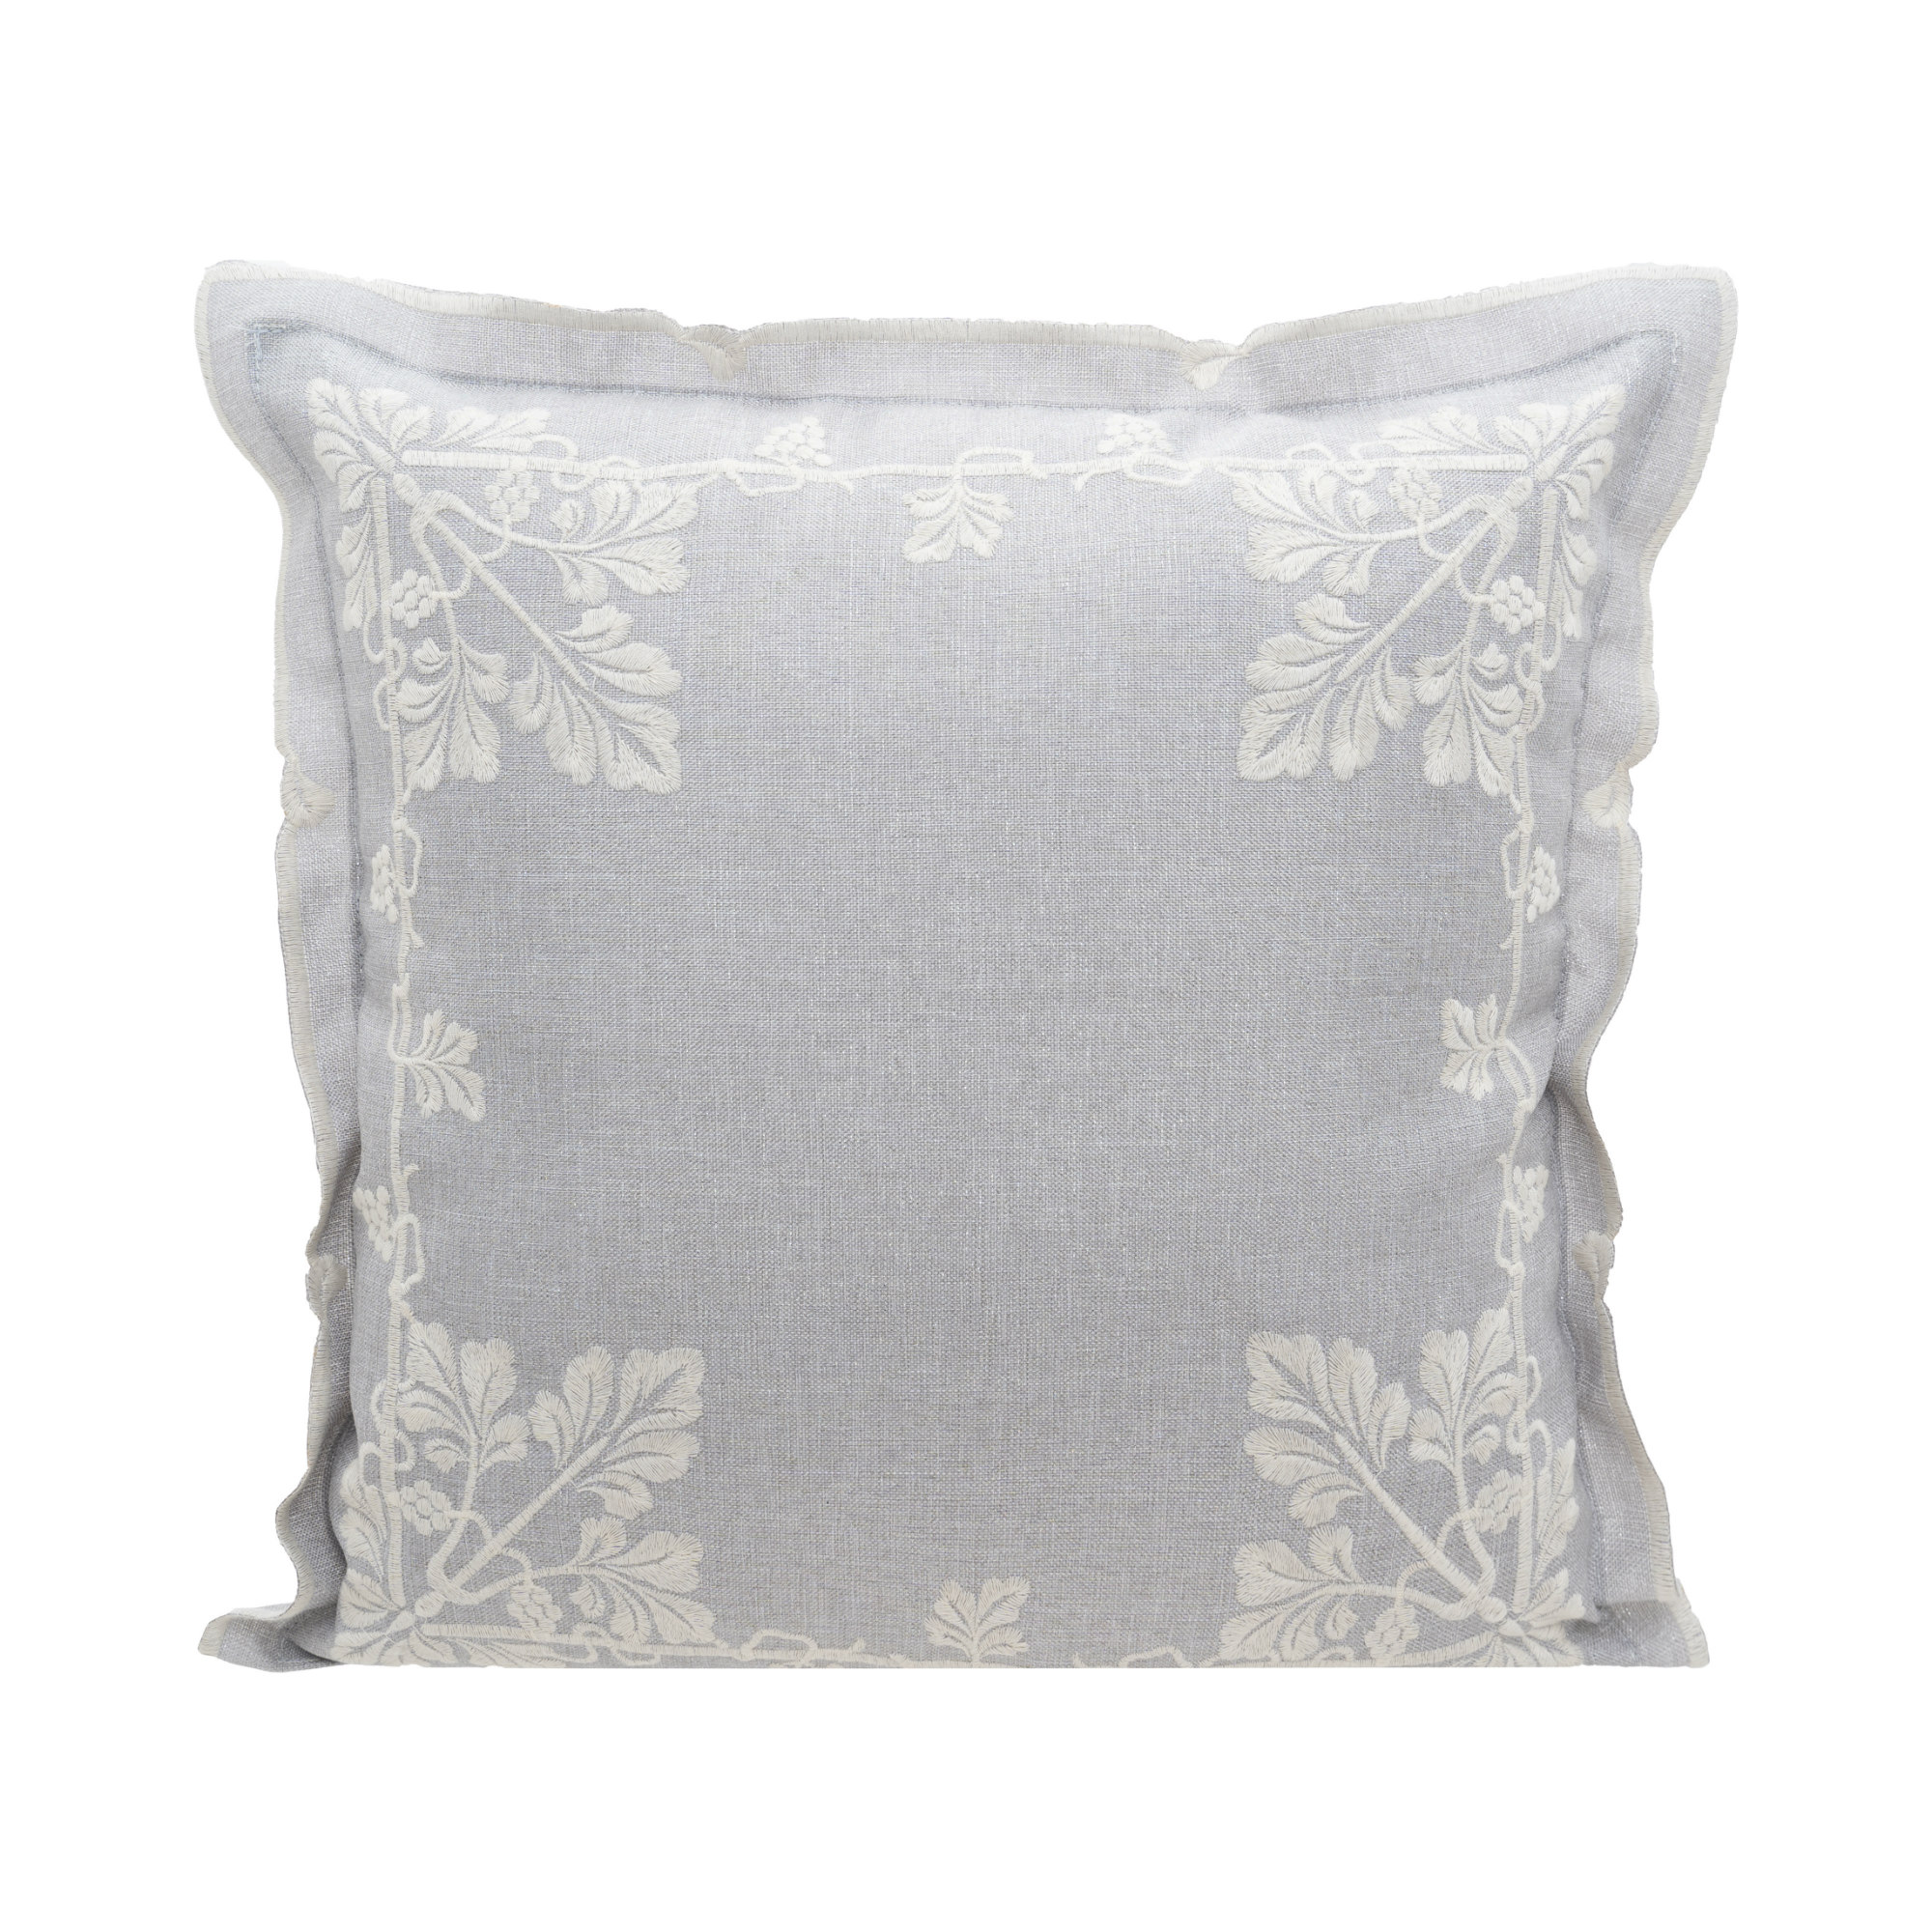 """Lace & Embroidery Vineyards Embroidery Cushion Cover/Throw Pillow Cover. Easy Care Cation Fabric. 45x45cm/18x18"""" (Grey)"""